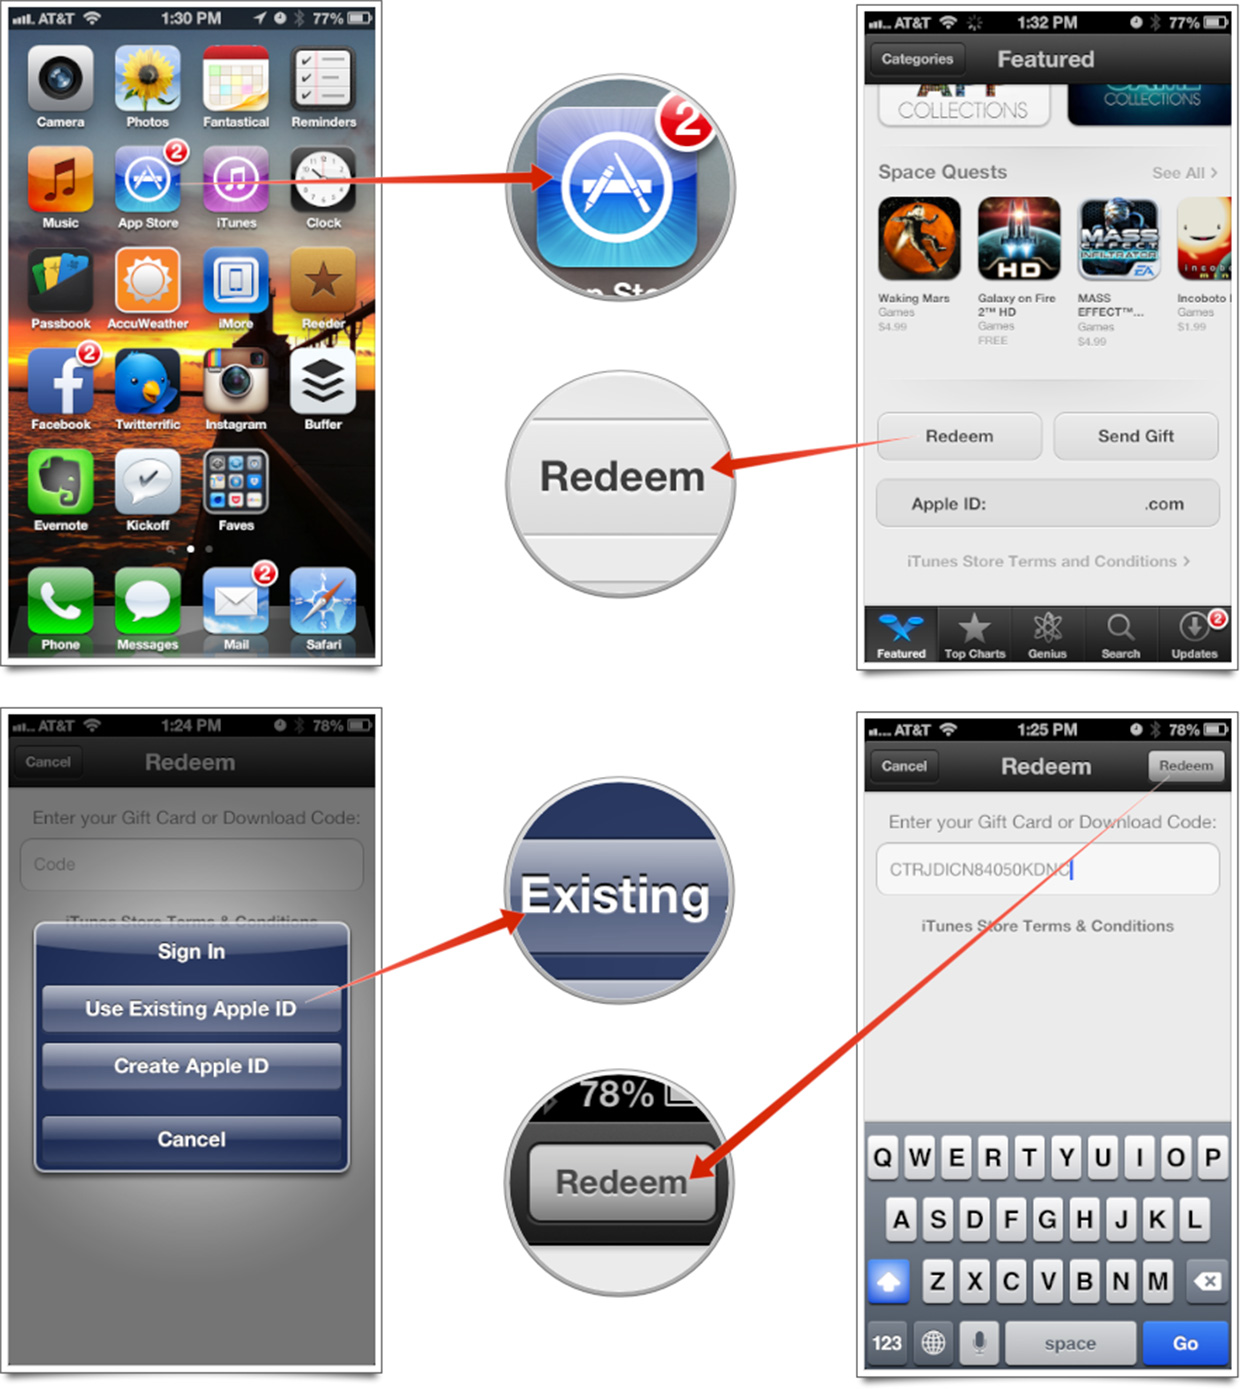 app_store_redeem_howto